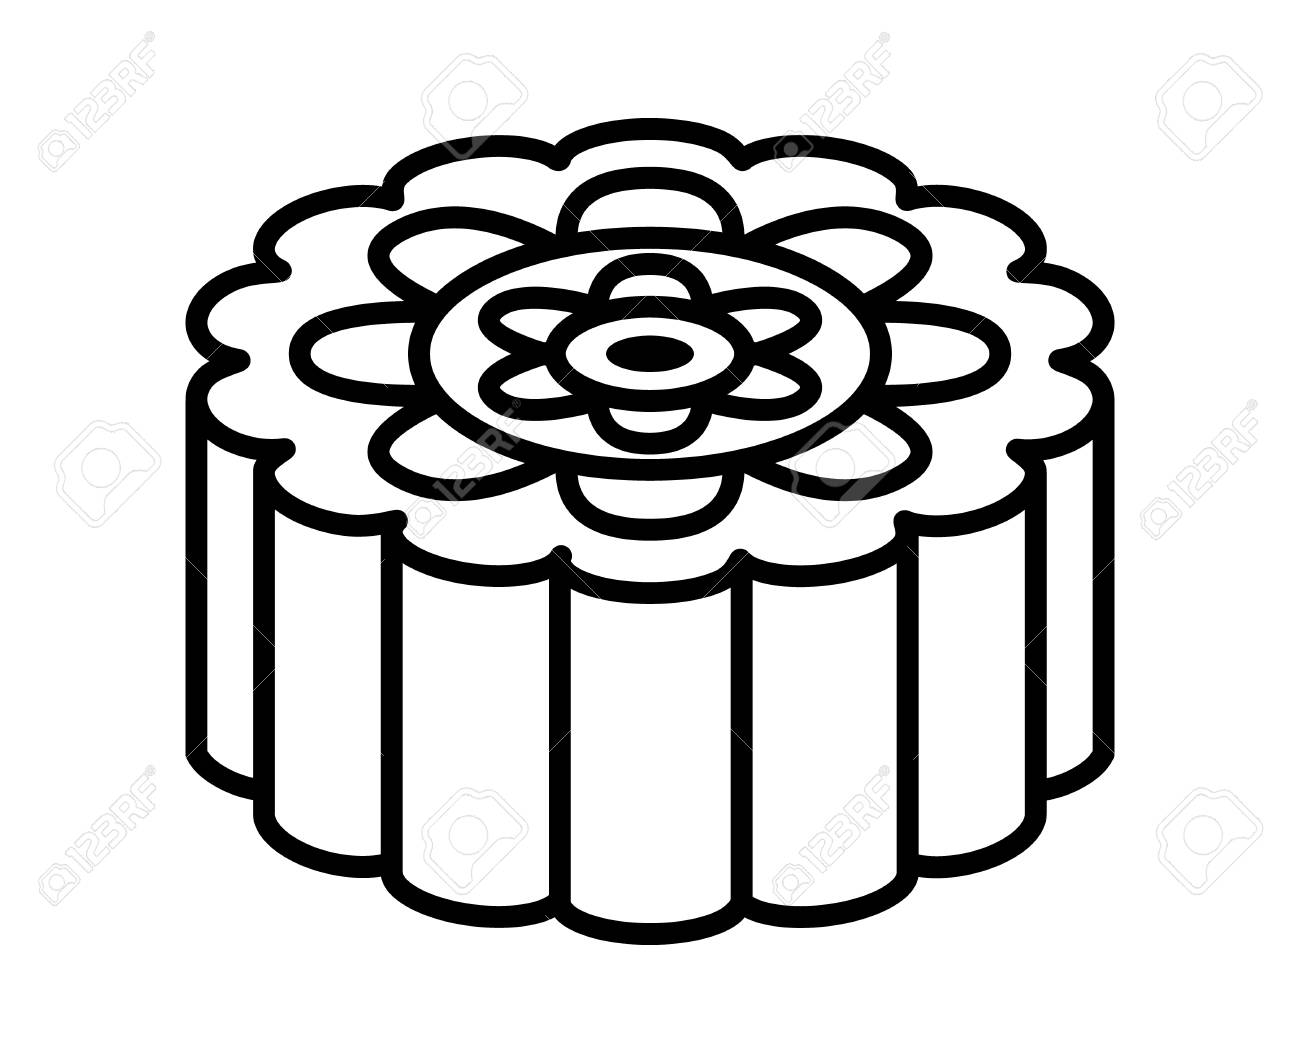 mooncake or moon cake for the mid autumn festival line art vector